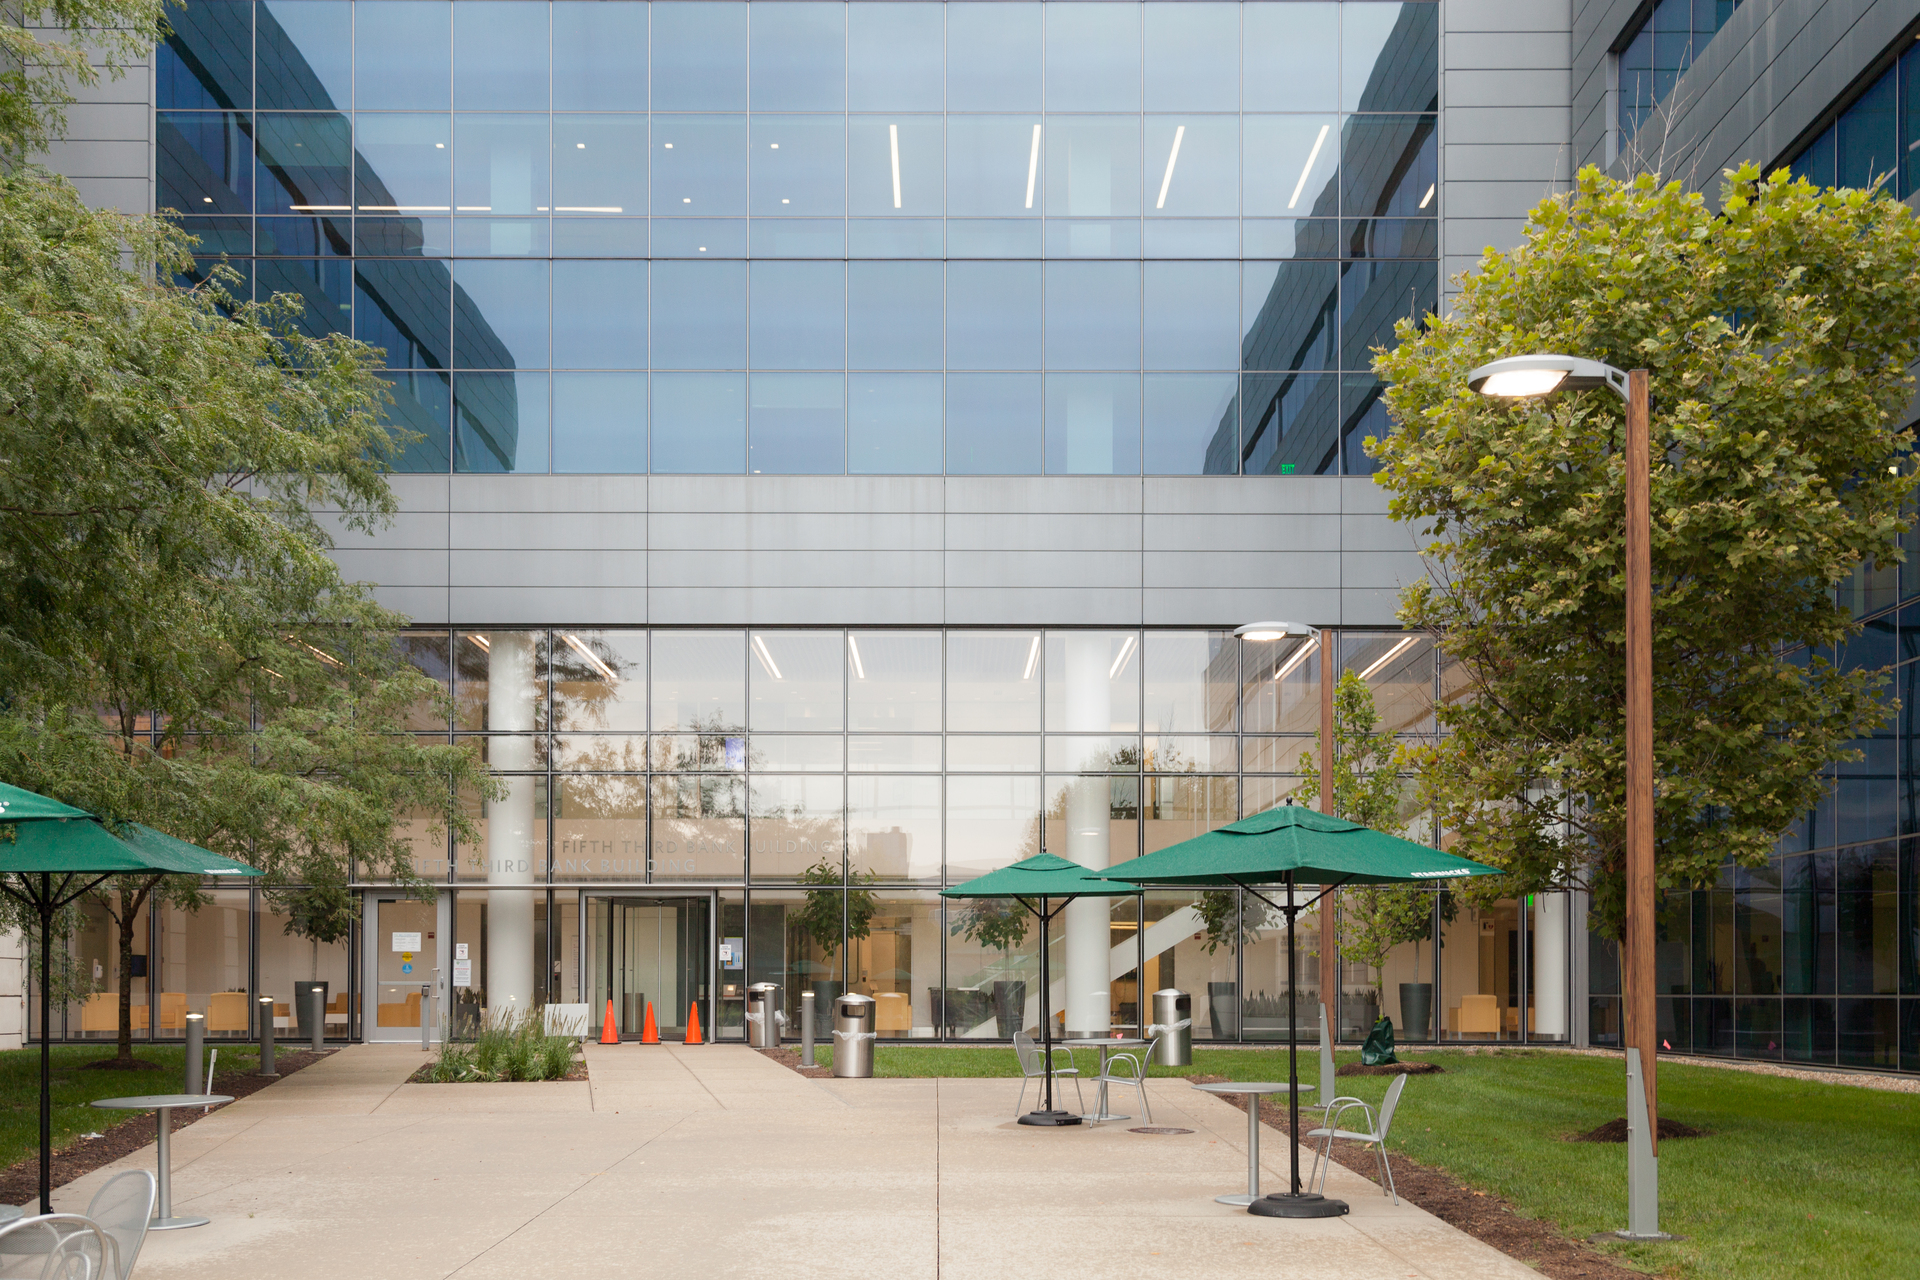 The glass facade showcases the interior lighting of the modern building design. Our Sine Pole complements the overall look for the outdoor public seating spaces.